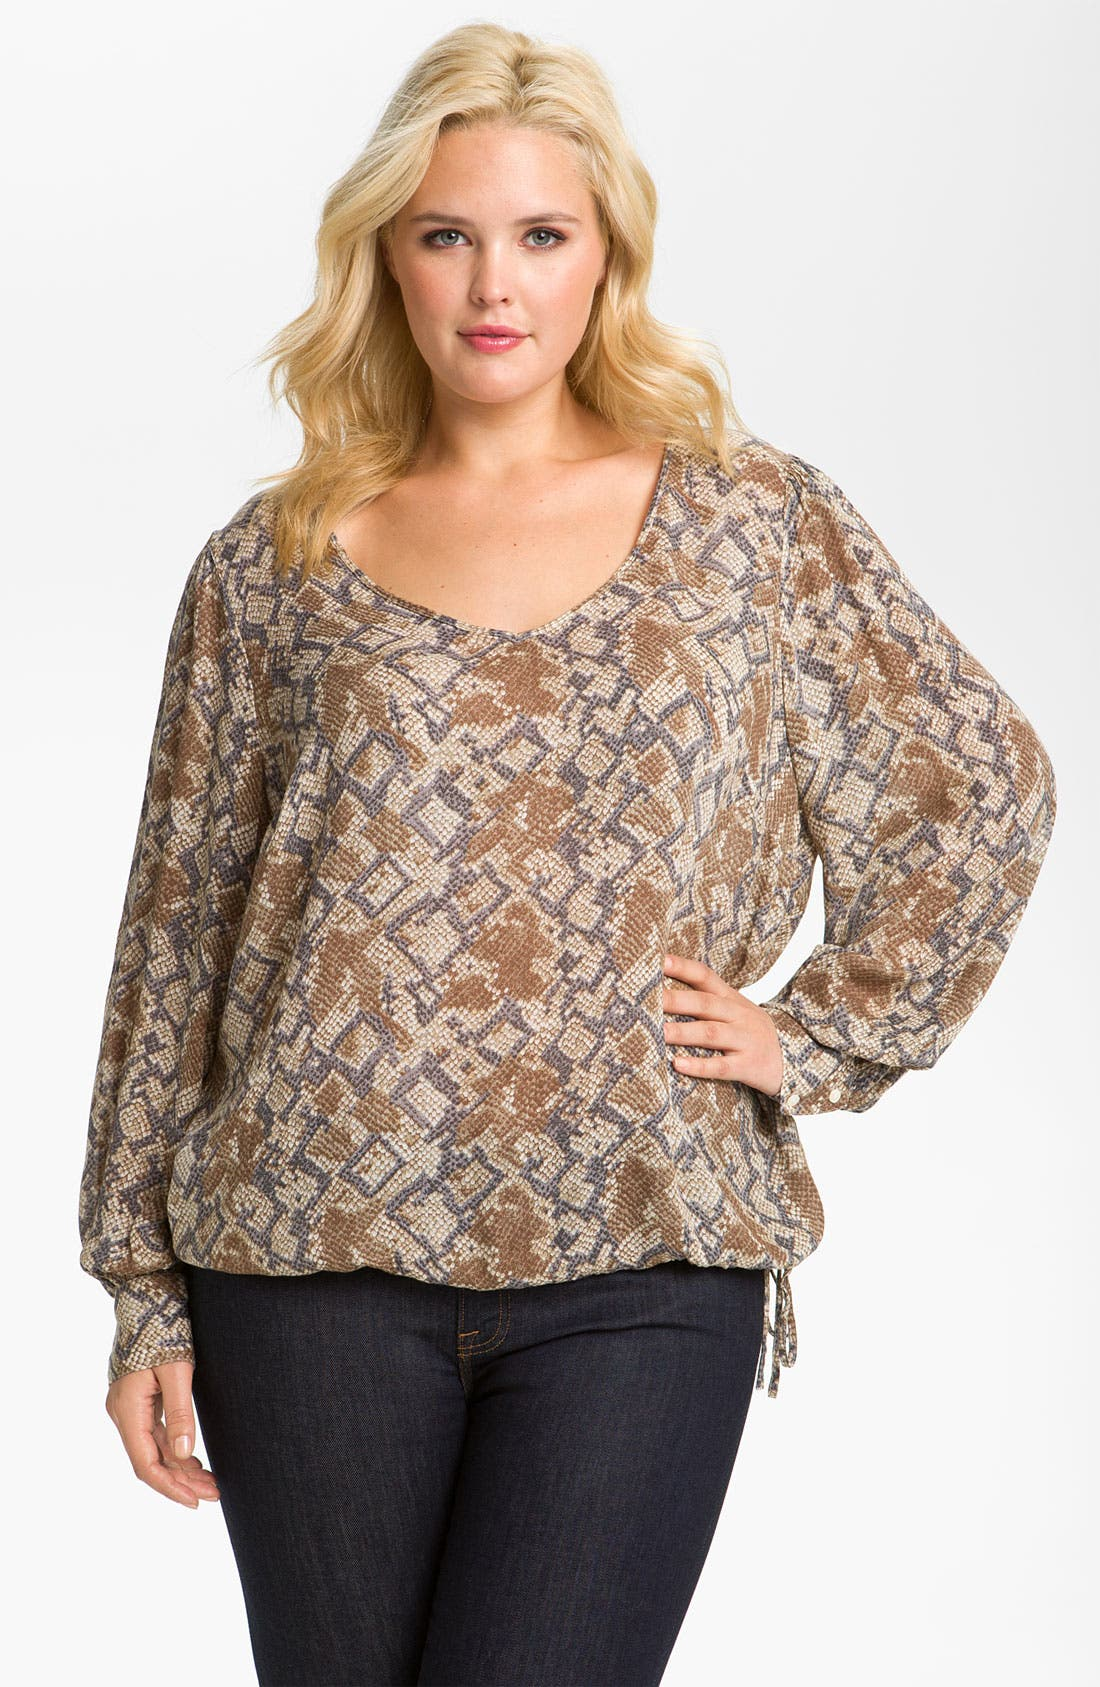 Alternate Image 1 Selected - Lucky Brand 'Anaconda' Blouson Top (Plus)